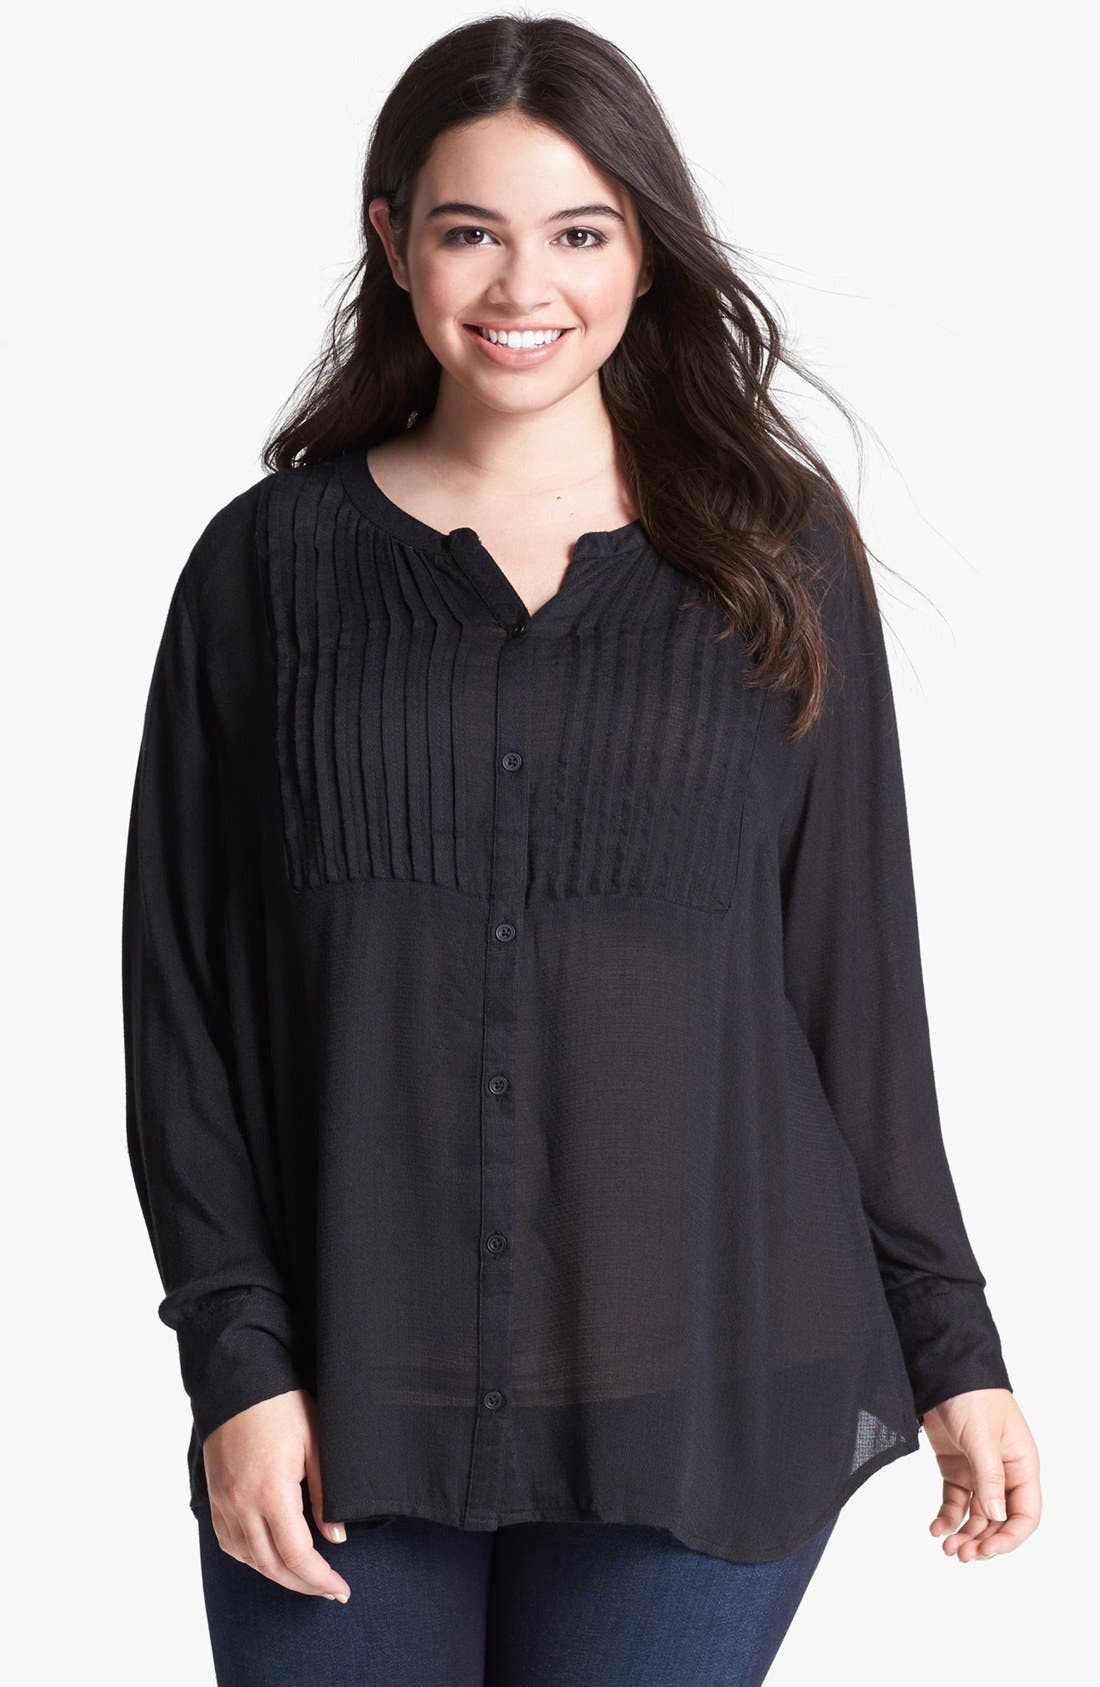 Alternate Image 1 Selected - Lucky Brand Dobby Tuxedo Top (Plus Size)